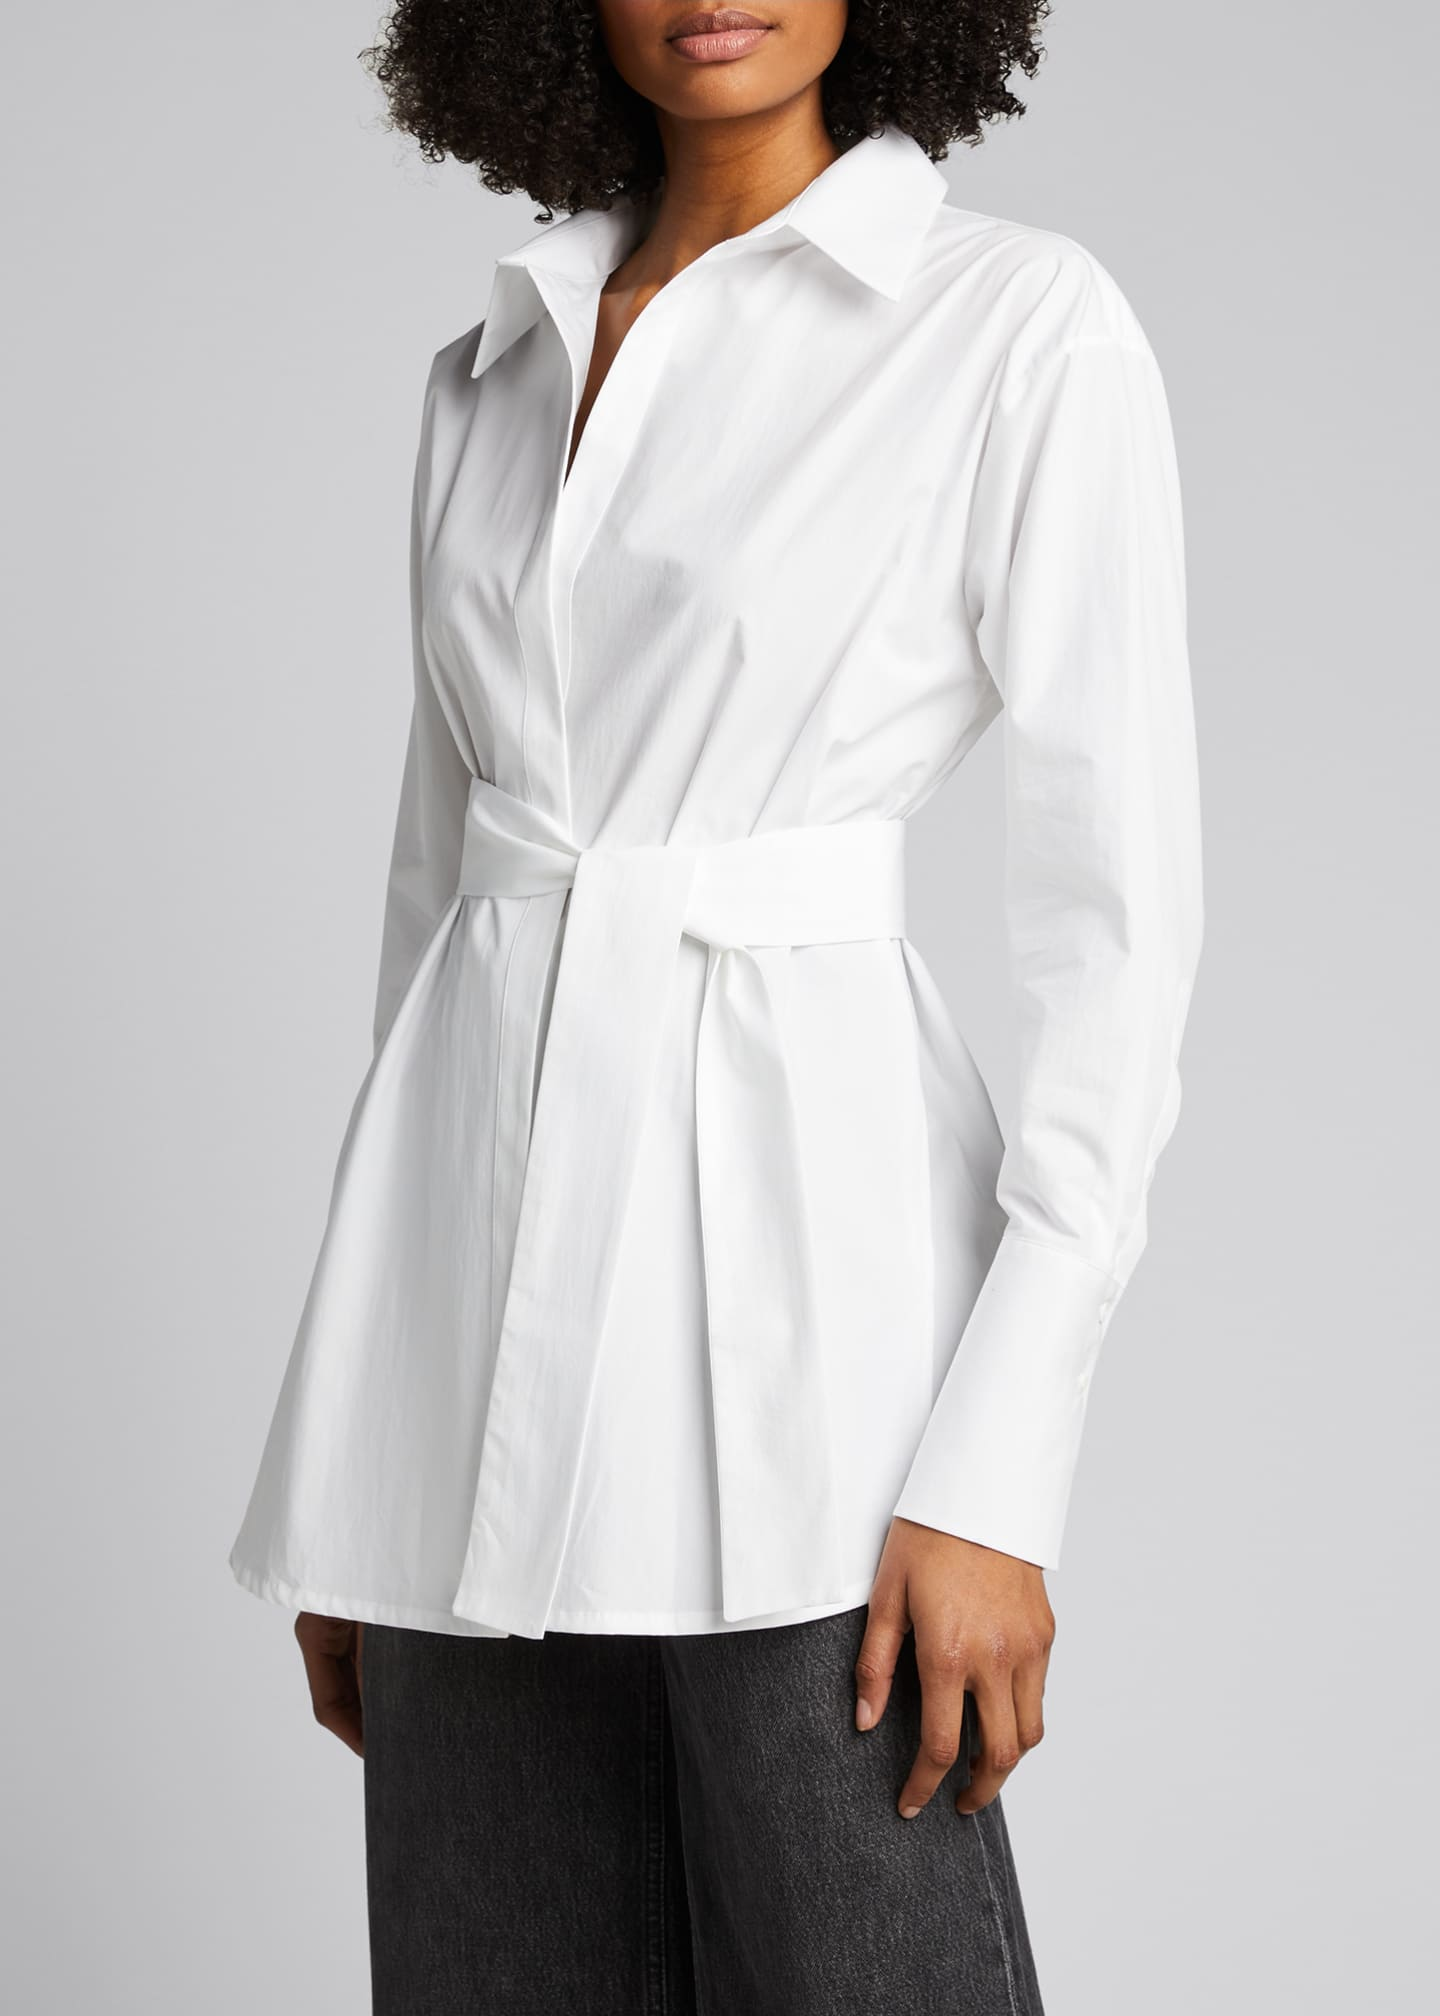 Image 3 of 5: Casablanca Belted Shirt